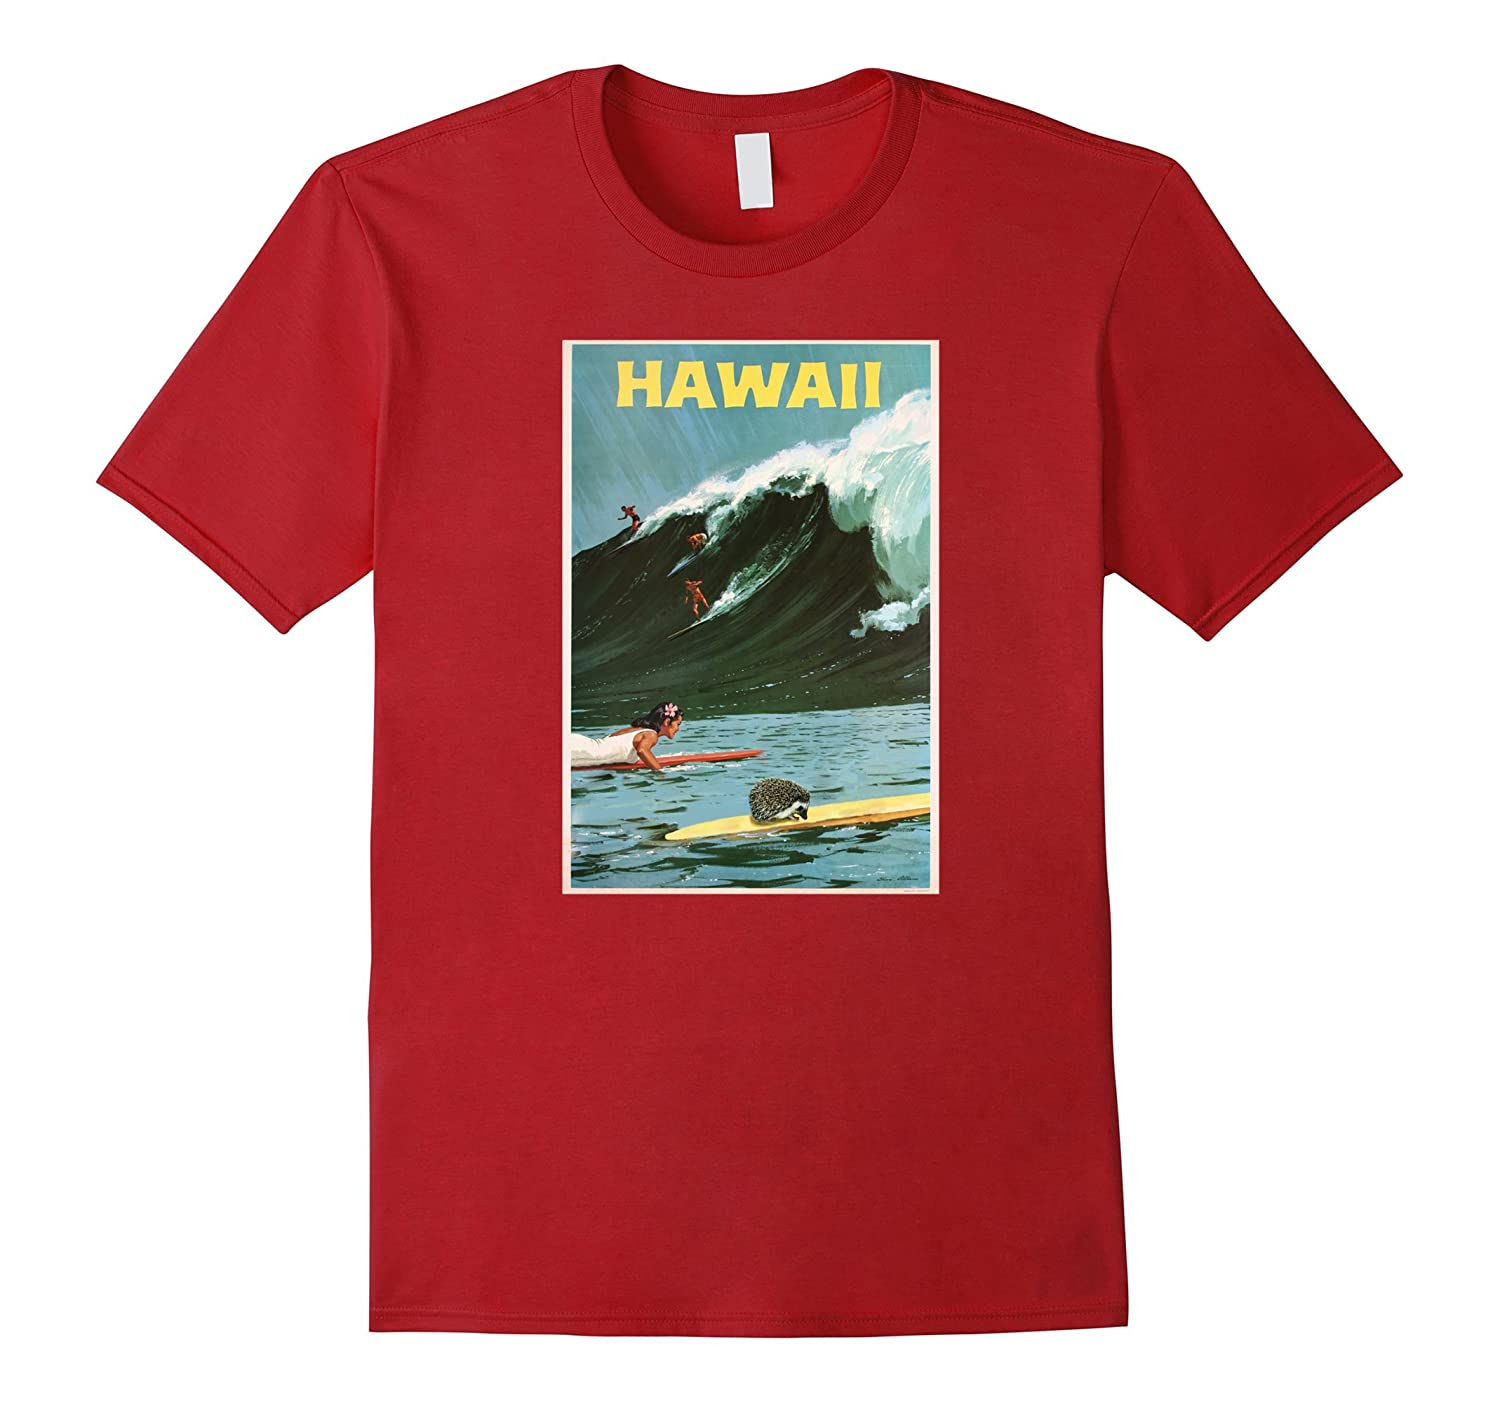 Hedgehog tshirt: Aloha Hawaii Hedgehog Surfing Shirt-Art